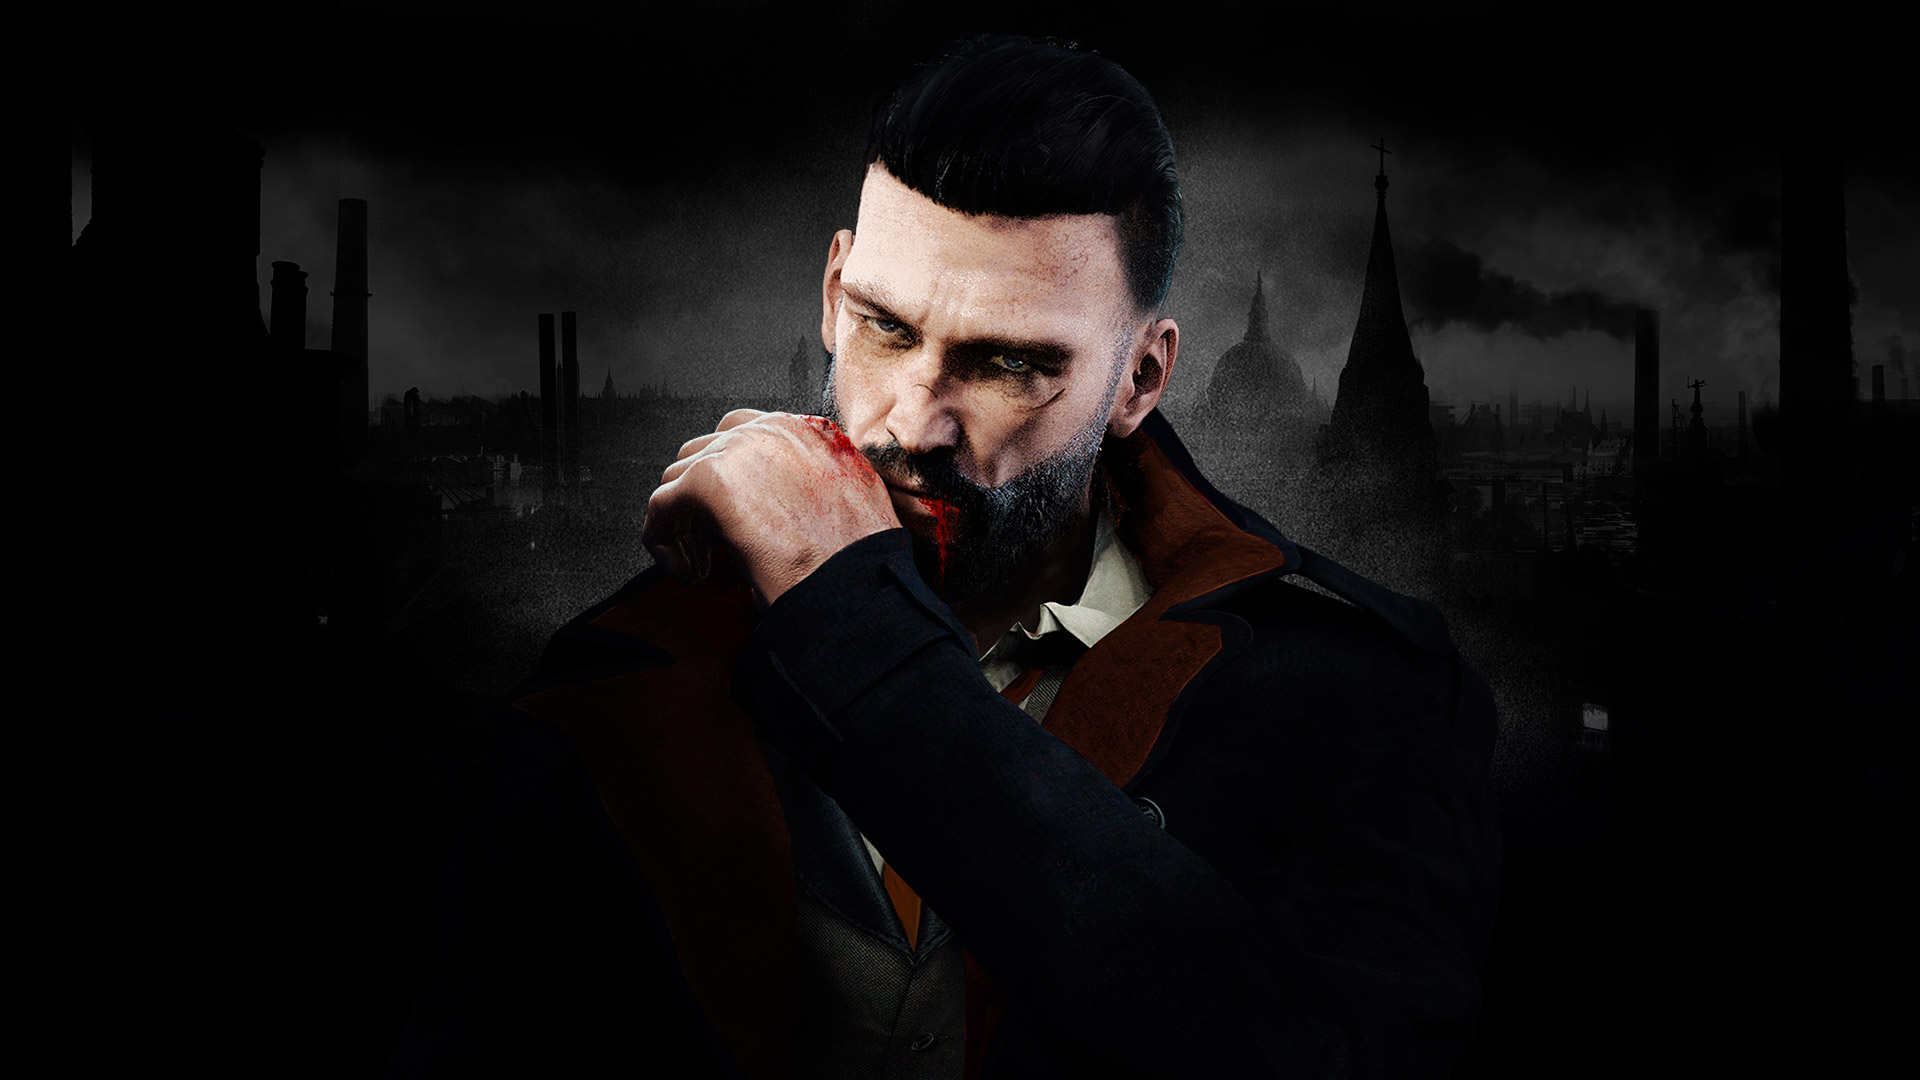 Free Vampyr Wallpaper in 1920x1080